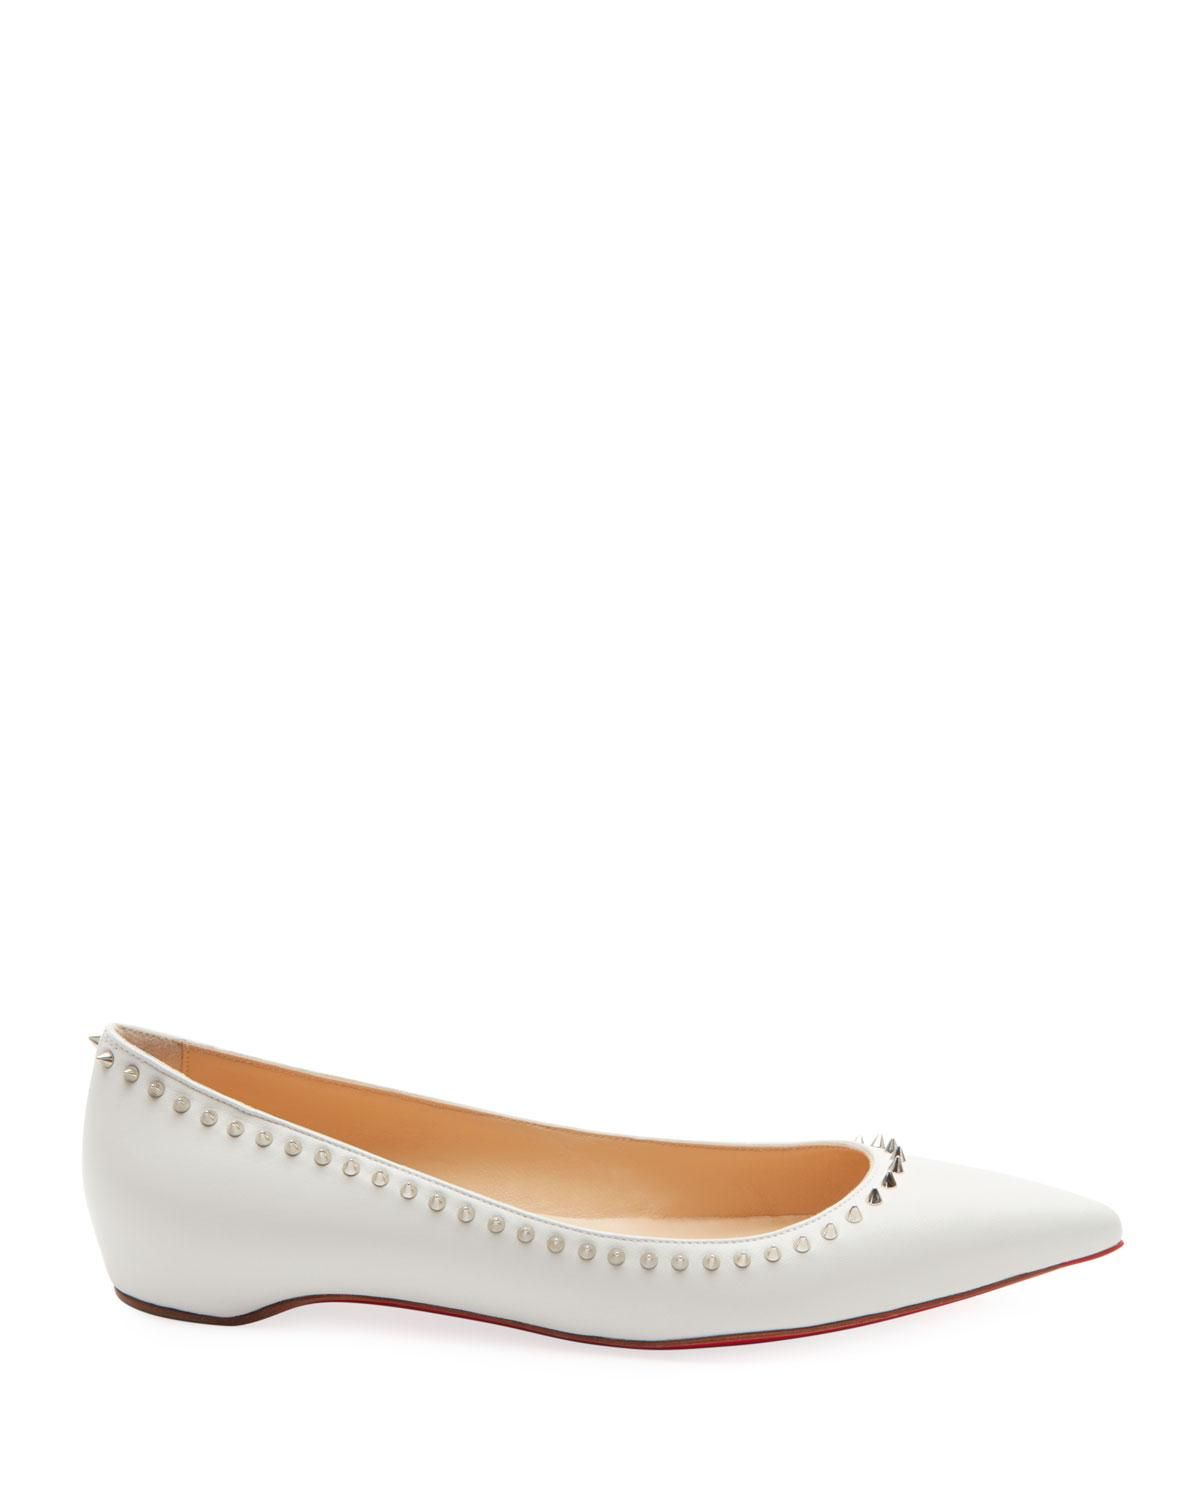 d15d4bba3078 Lyst - Christian Louboutin Anjalina Studded Red Sole Ballet Flats in White